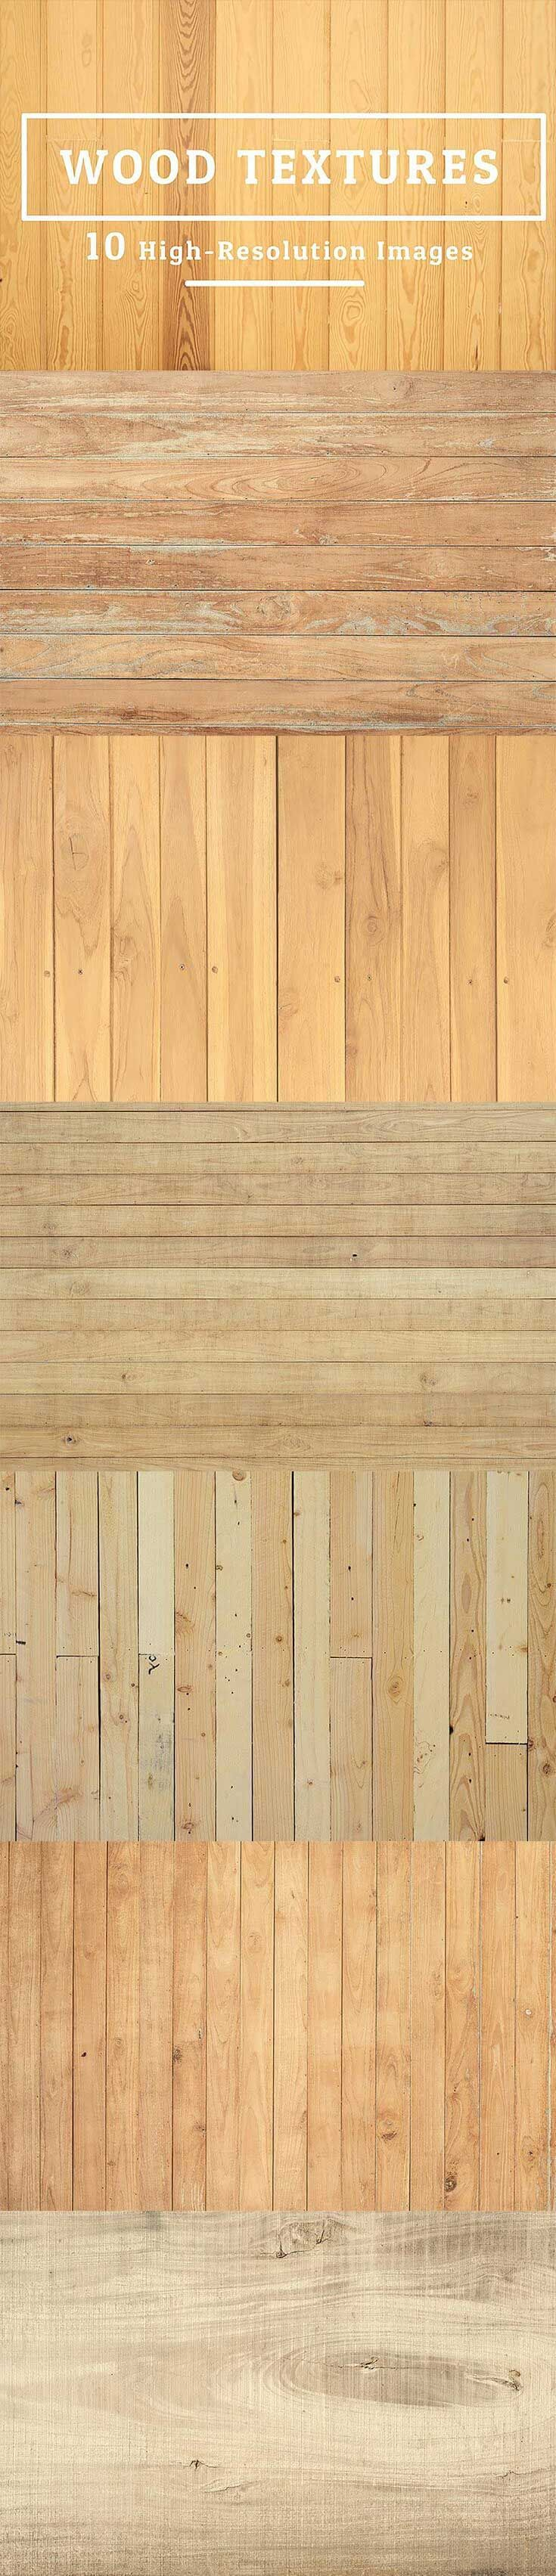 Free Wood Texture Background #woodtexturebackground Free Wood Texture Background #woodtexturebackground